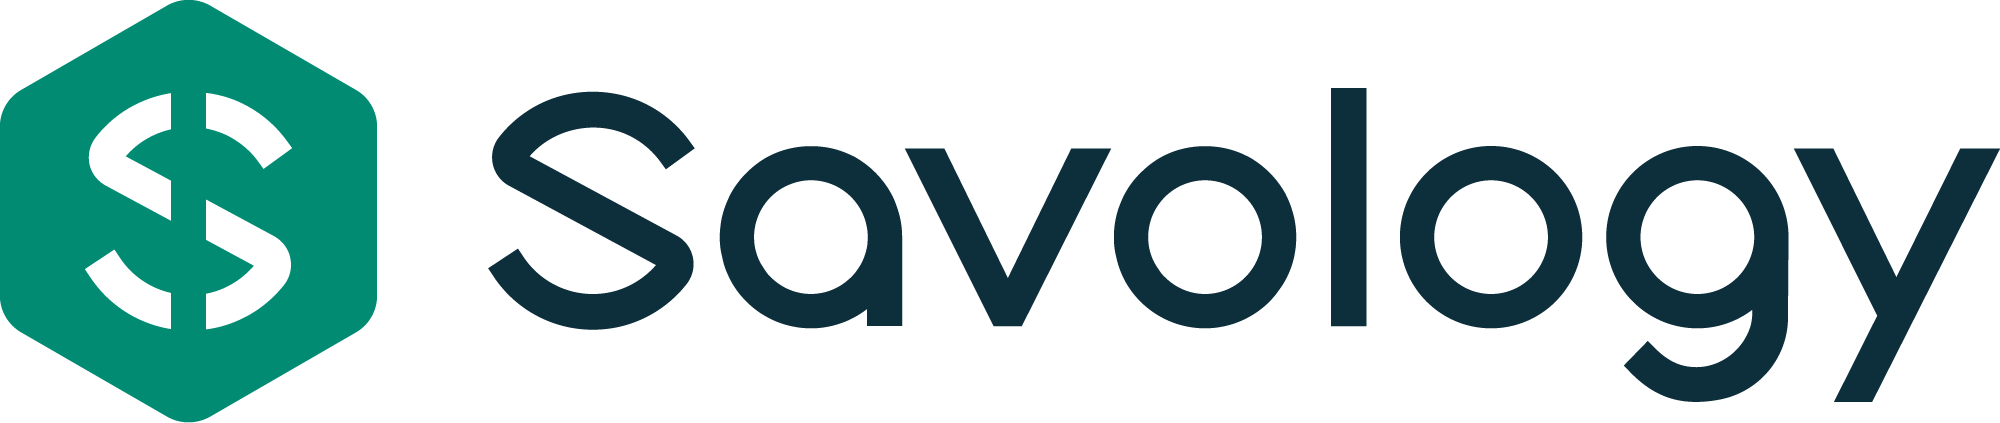 Savology - Savology's online financial planning platform is helping households reach their goals through personalized financial planning.